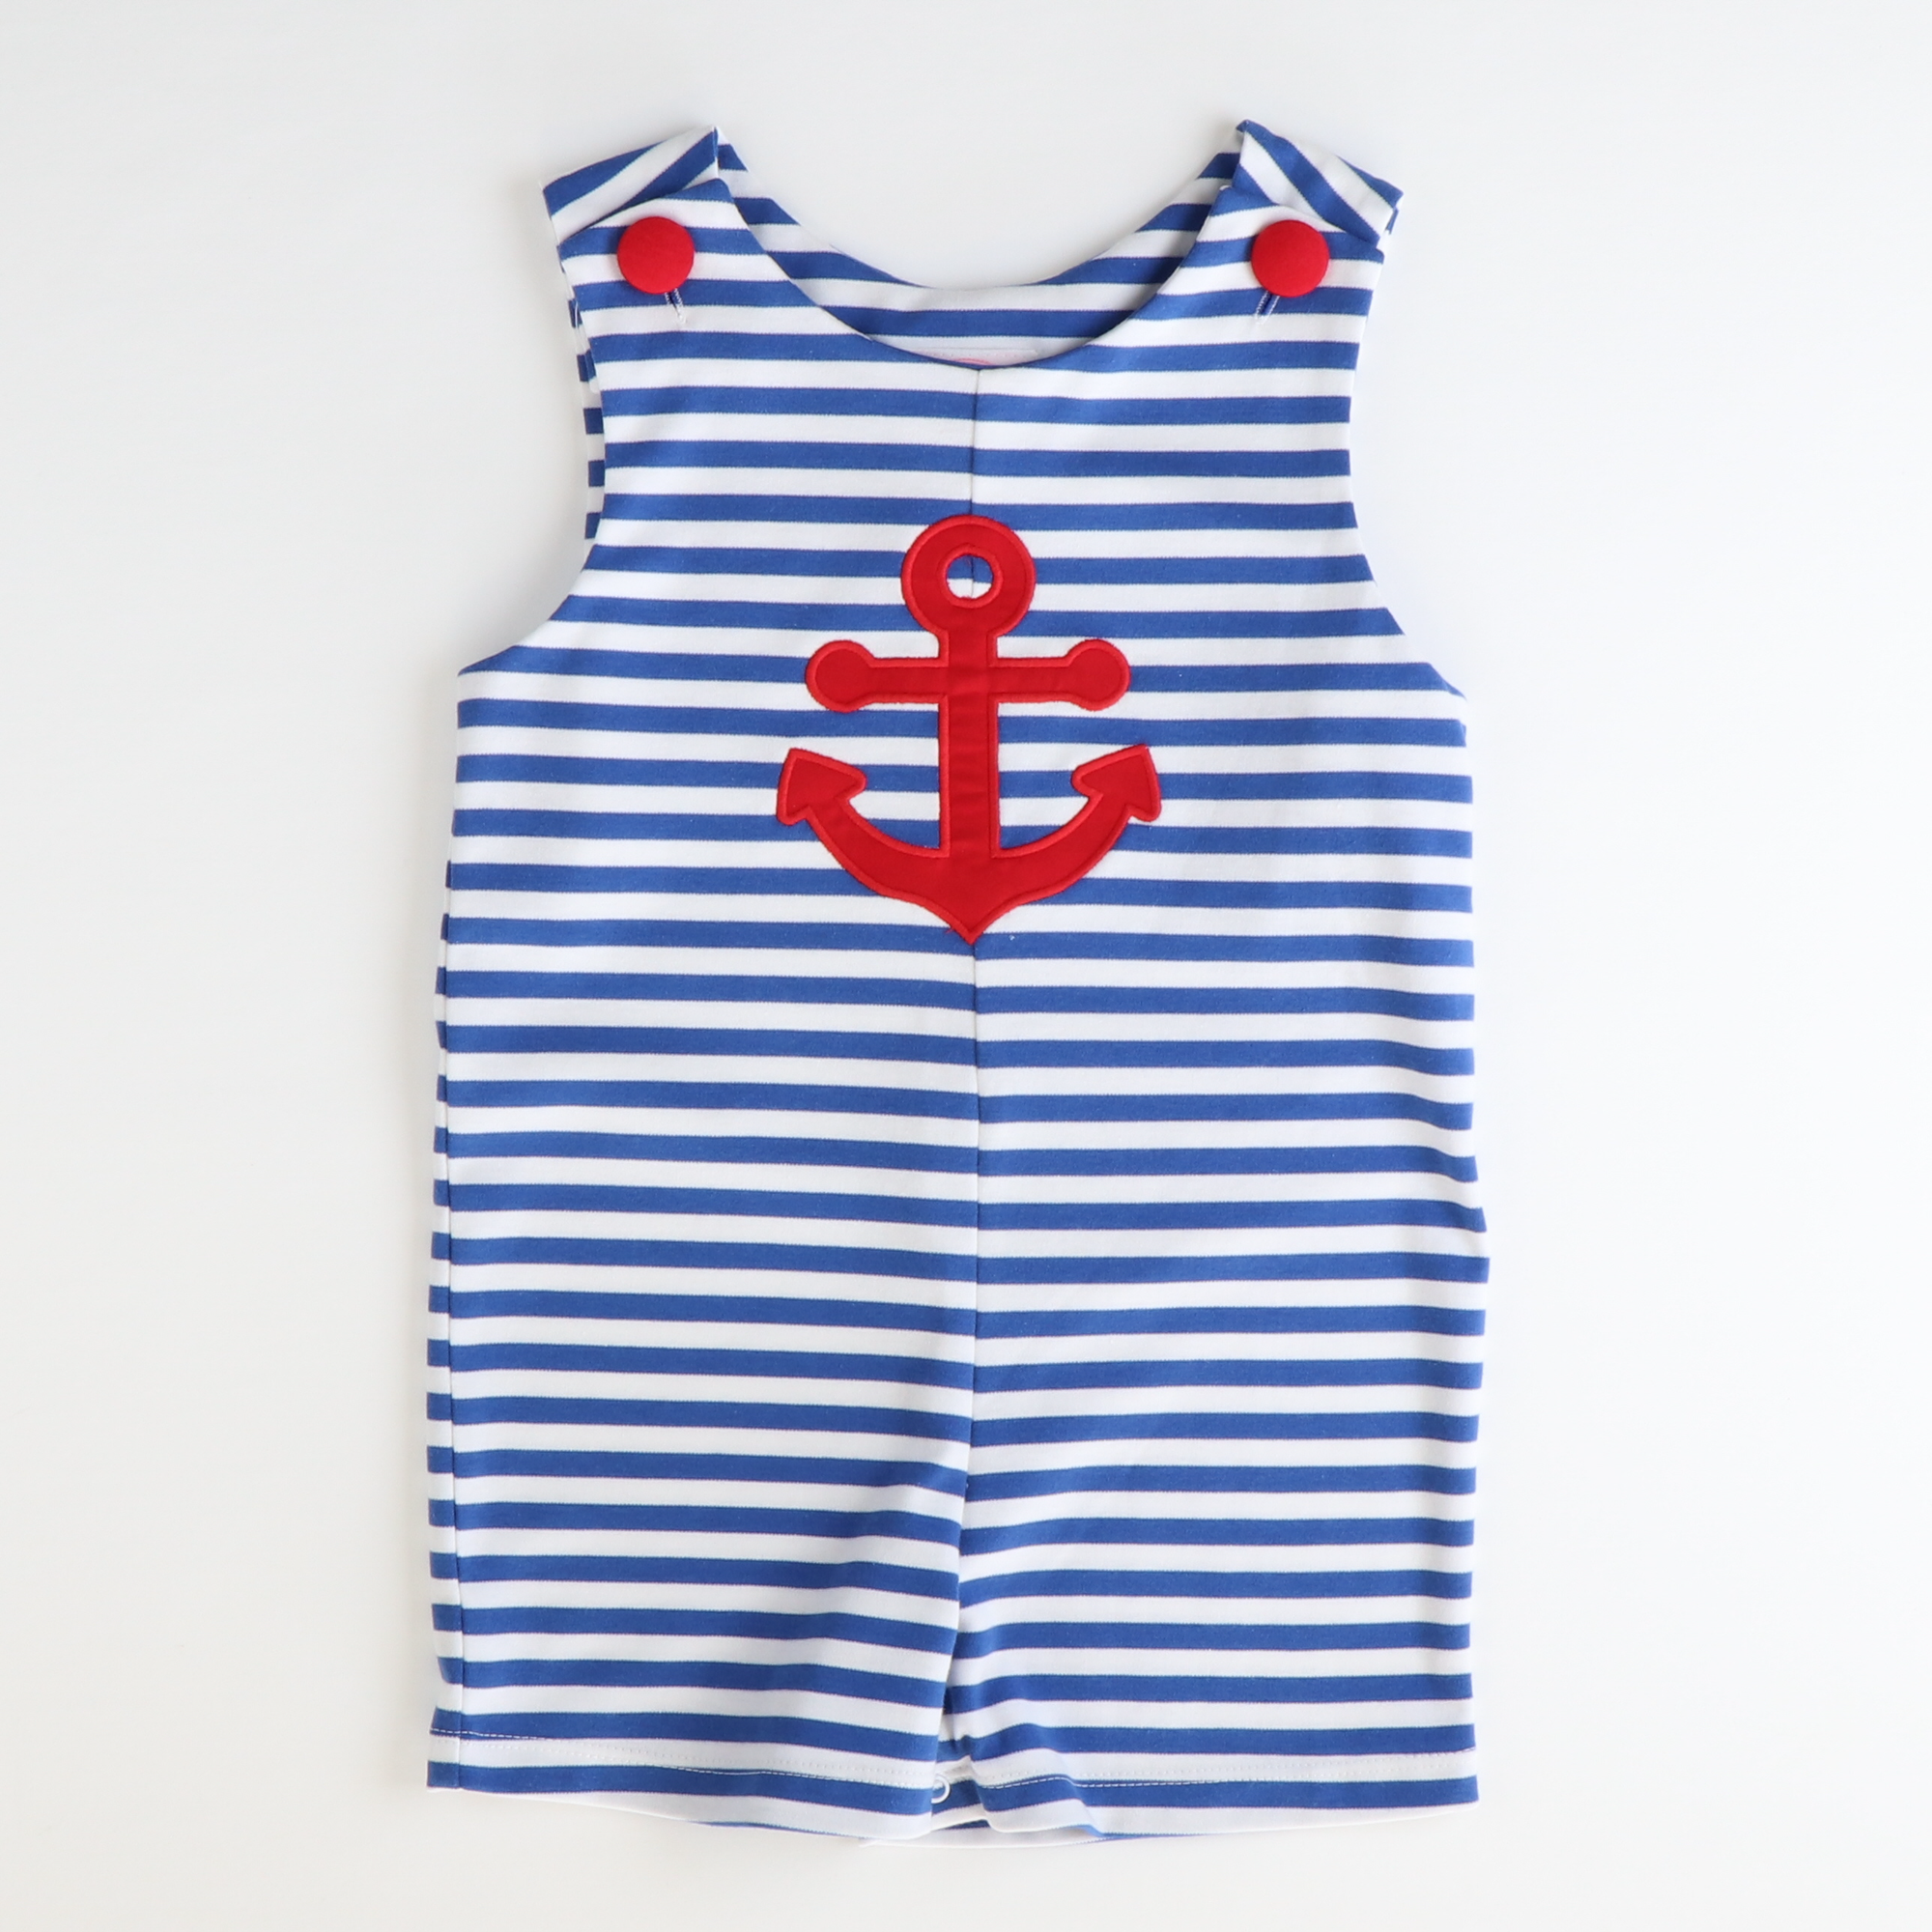 Appliqué Anchor Shortall - Royal Blue Stripe Knit